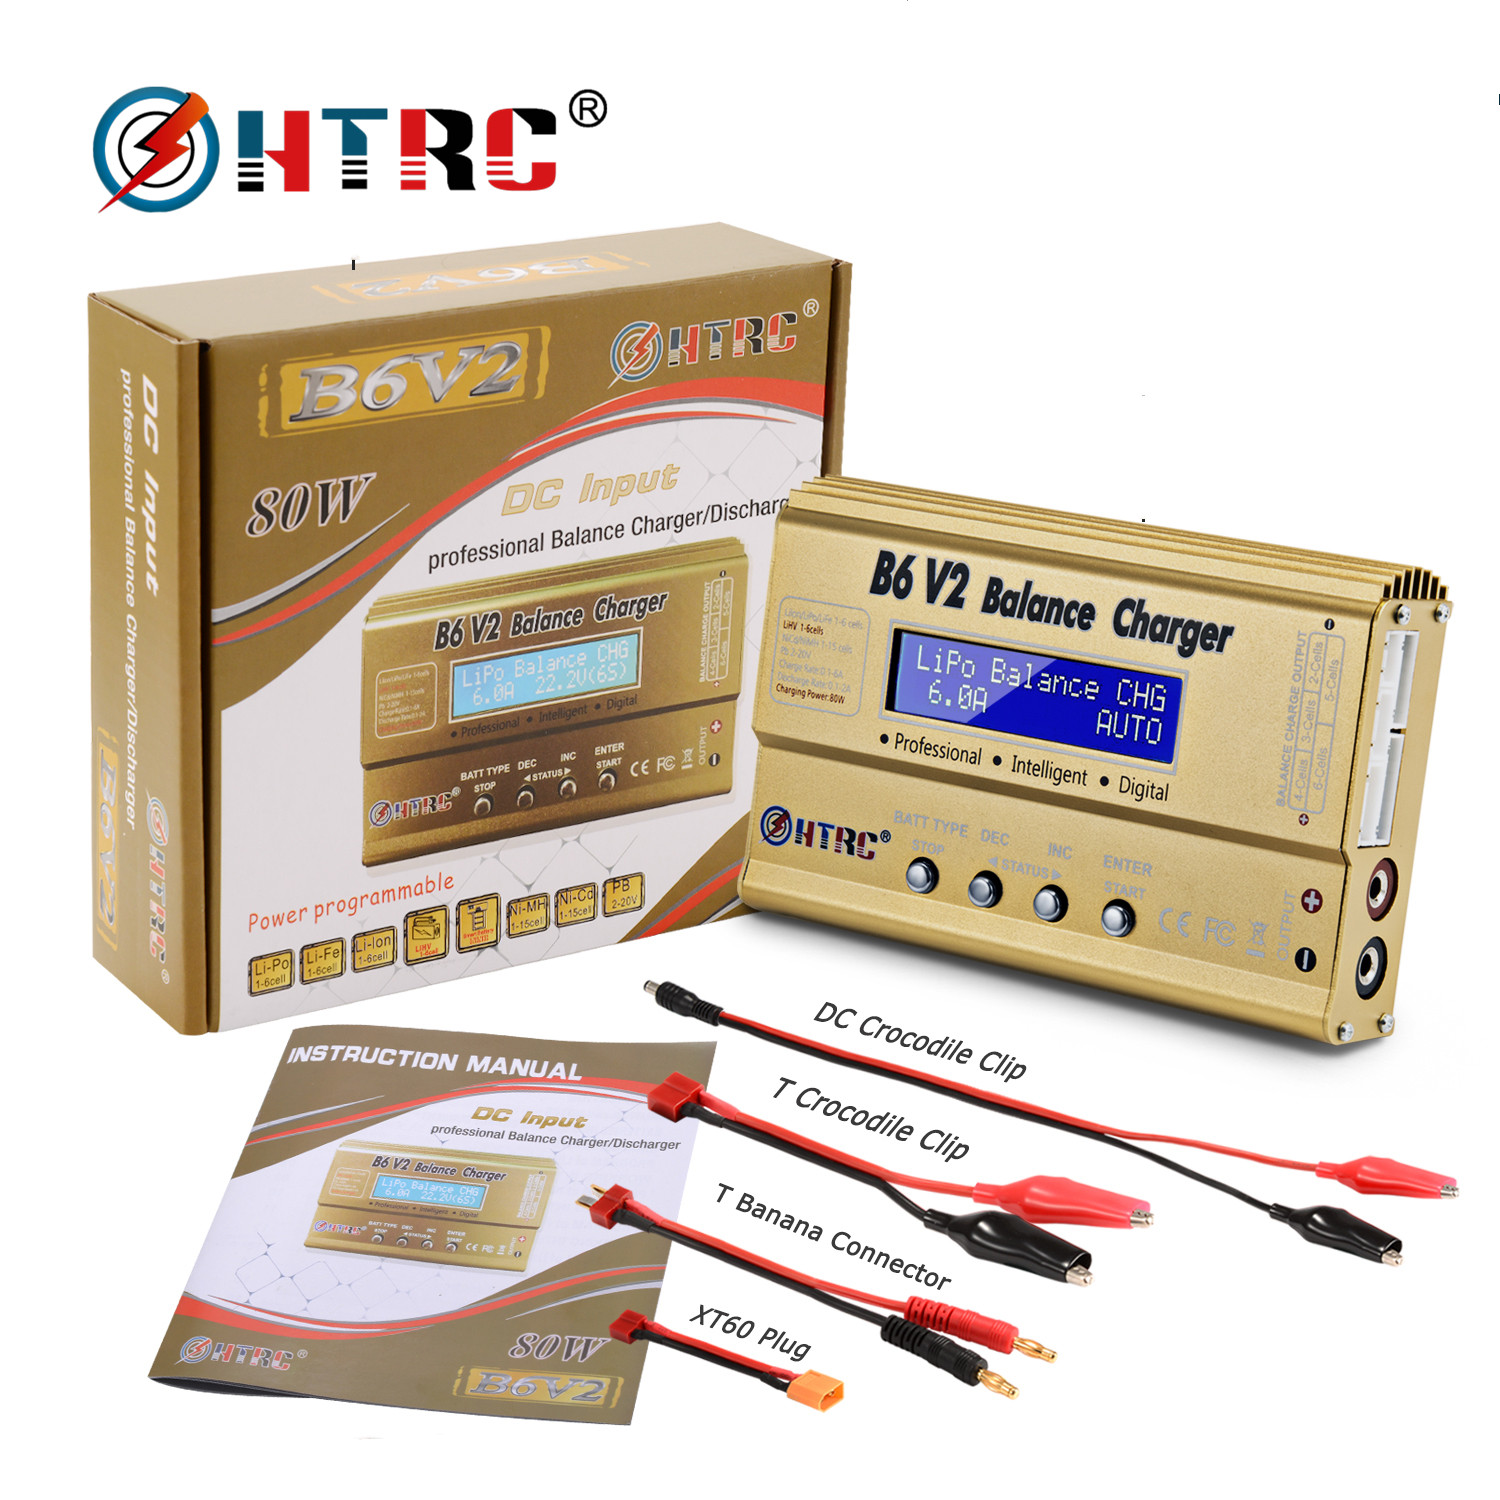 HTRC Imax b6 v2 Balance Charger 80W Professional For LiHV LiIonLiFe NiCd NiMH PB Battery LiPo Charger Digital Discharger|Chargers| - AliExpress